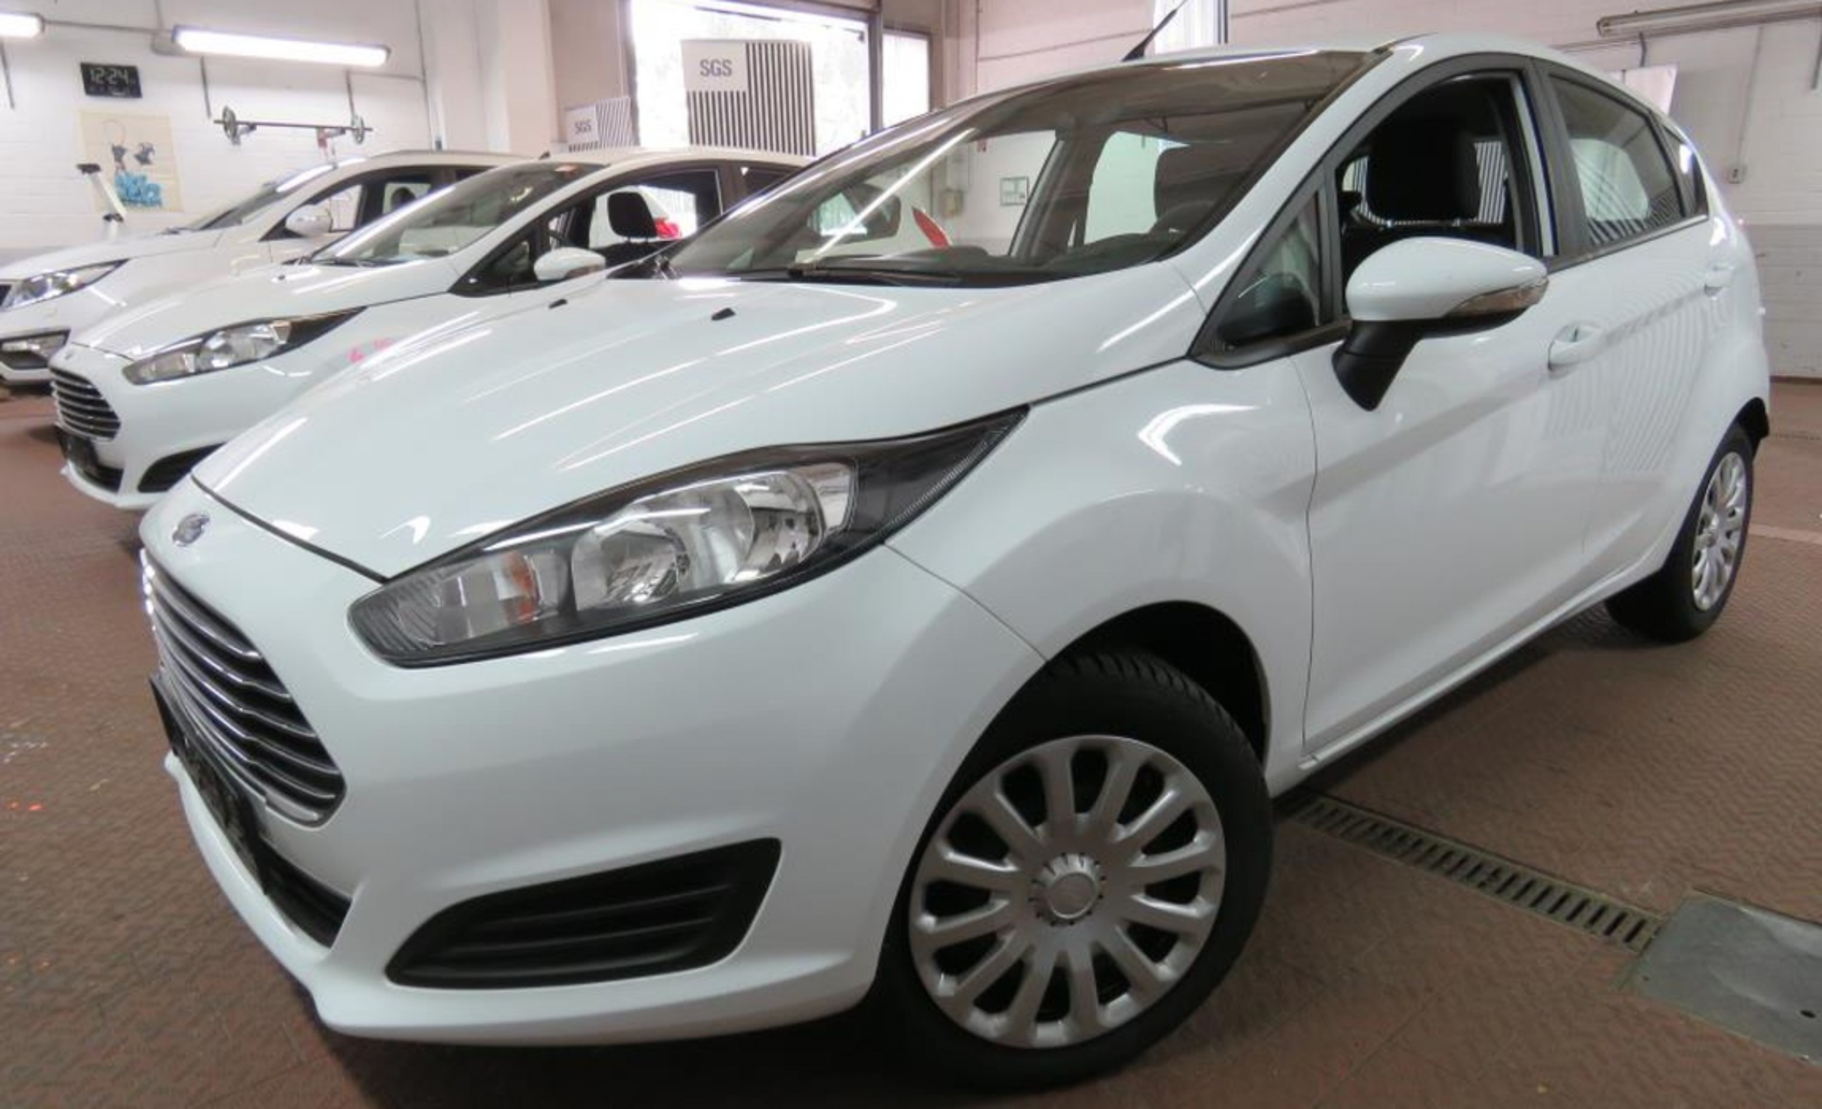 Ford Fiesta 1.0 Start-Stop, Trend (552490) detail1